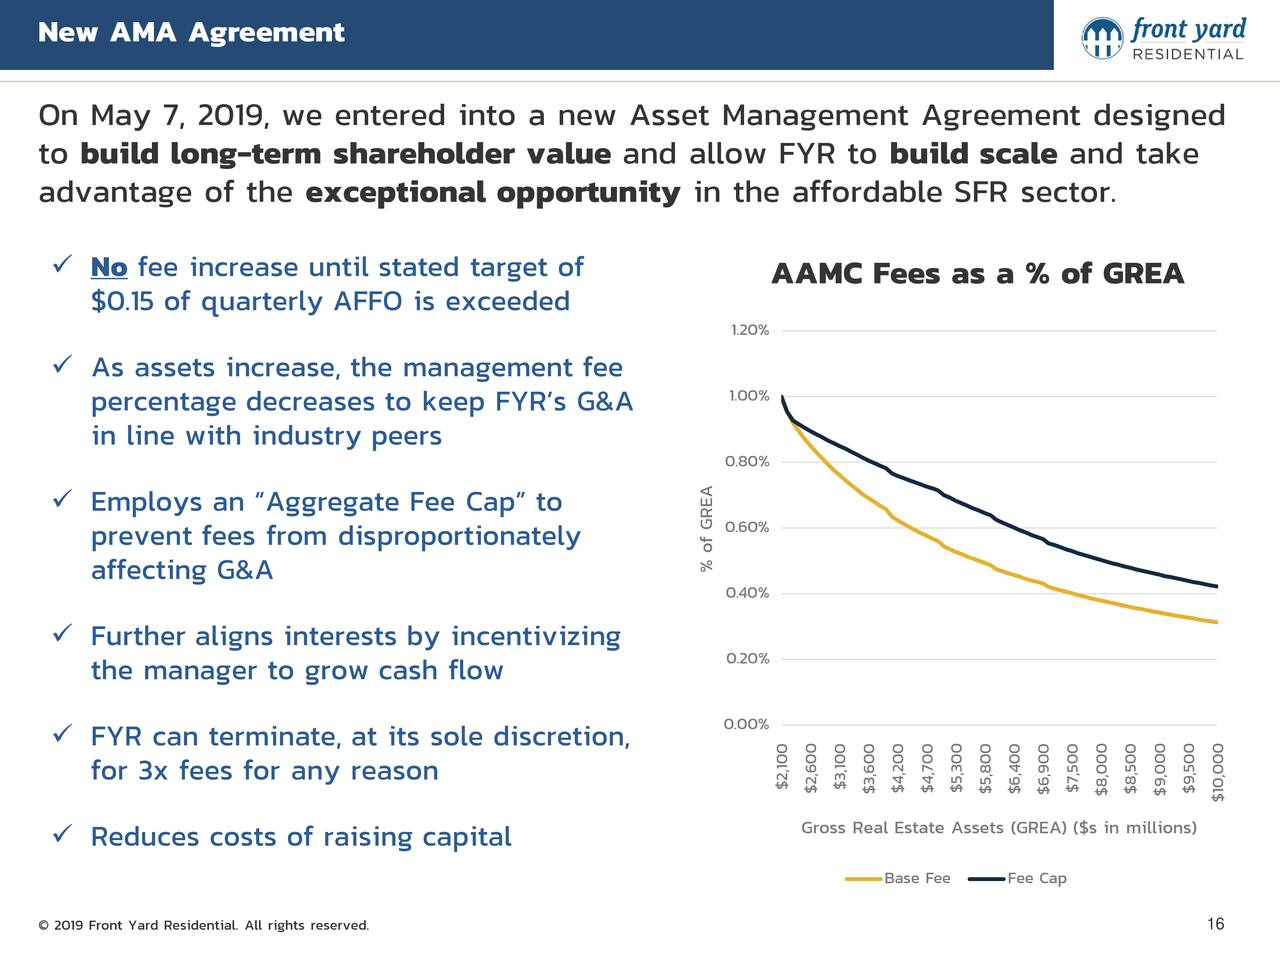 "On May 7, 2019, we entered into a new Asset Management Agreement designed to build long-term shareholder value and allow FYR to build scale and take advantage of the exceptional opportunity in the affordable SFR sector.  No fee increase until stated target of AAMC Fees as a % of GREA $0.15 of quarterly AFFO is exceeded 1.20%  As assets increase, the management fee percentage decreases to keep FYR's G&A 1.00% in line with industry peers 0.80%  Employs an ""Aggregate Fee Cap"" to 0.60% prevent fees from disproportionately affecting G&A % of GREA 0.40%  Further aligns interests by incentivizing 0.20% the manager to grow cash flow 0.00%  FYR can terminate, at its sole discretion, for 3x fees for any reason $2$2,600$3,60020070000 $7,500 $9,500 $5,$6,$6,90$8,000$9,00$10,000 Gross Real Estate Assets (GREA) ($s in millions)  Reduces costs of raising capital Base Fee Fee Cap © 2019 Front Yard Residential. All rights reserved. 16"